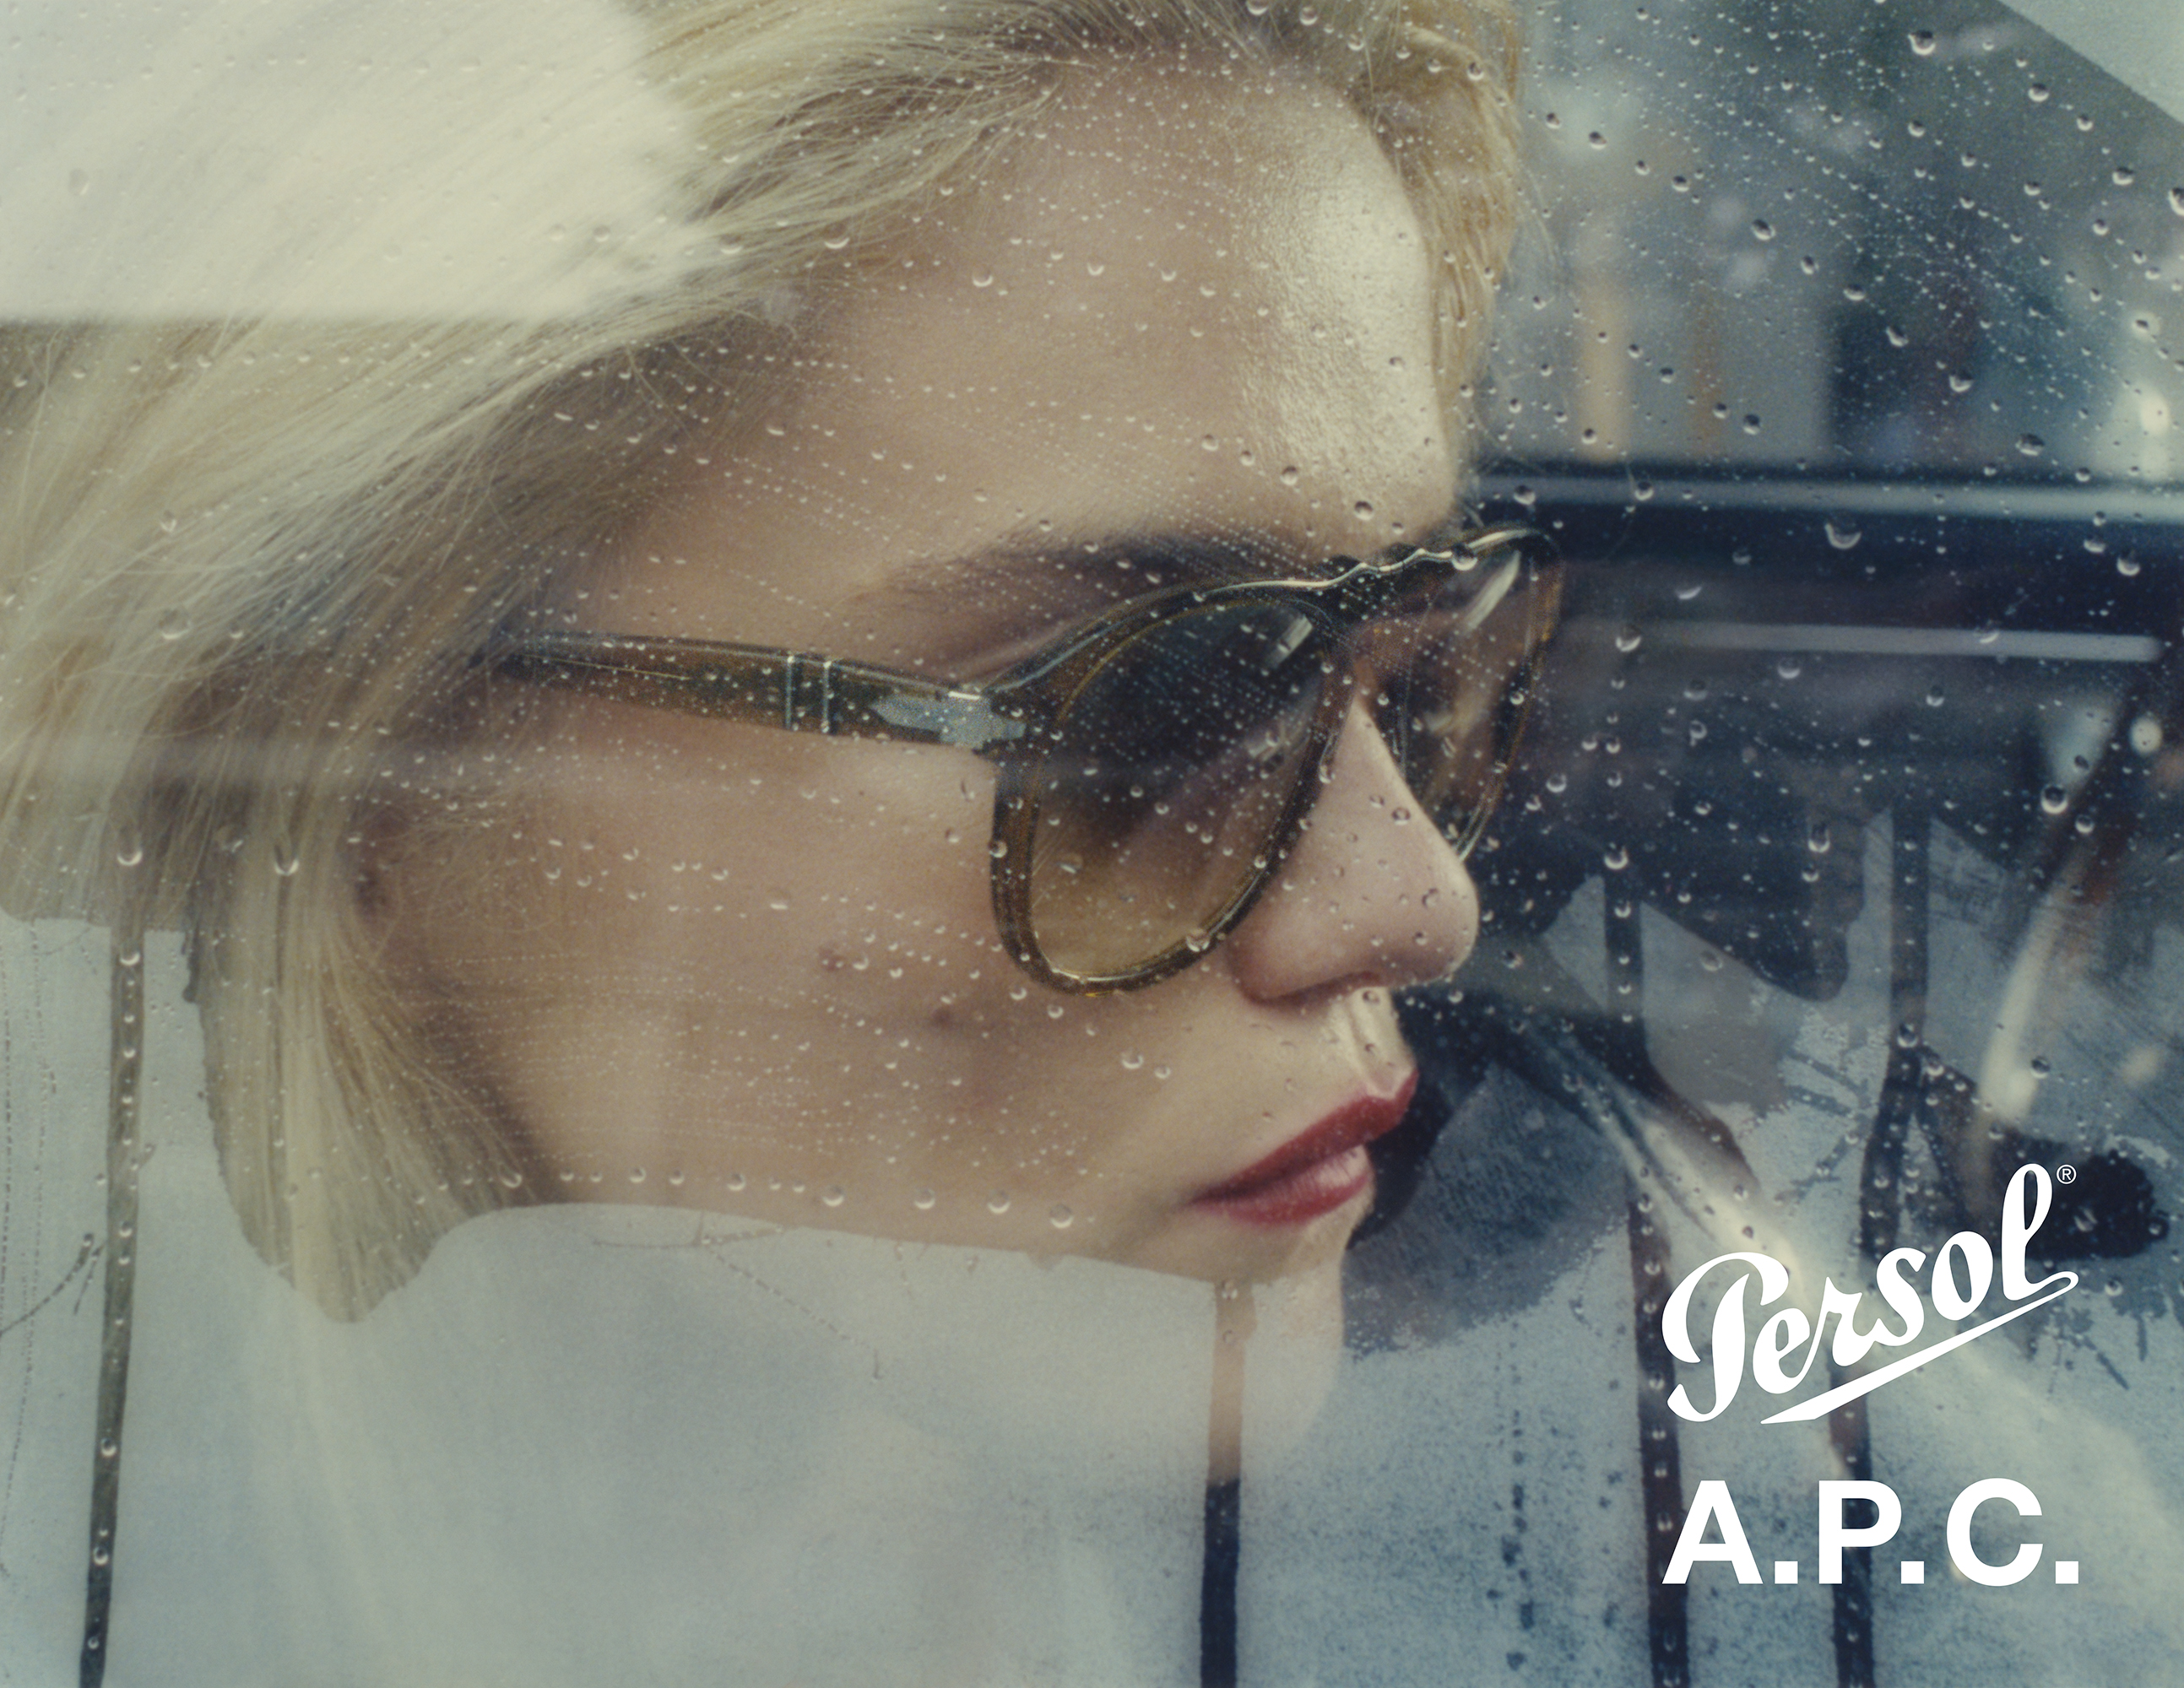 A.P.C. X PERSOL - WhyNot Mag